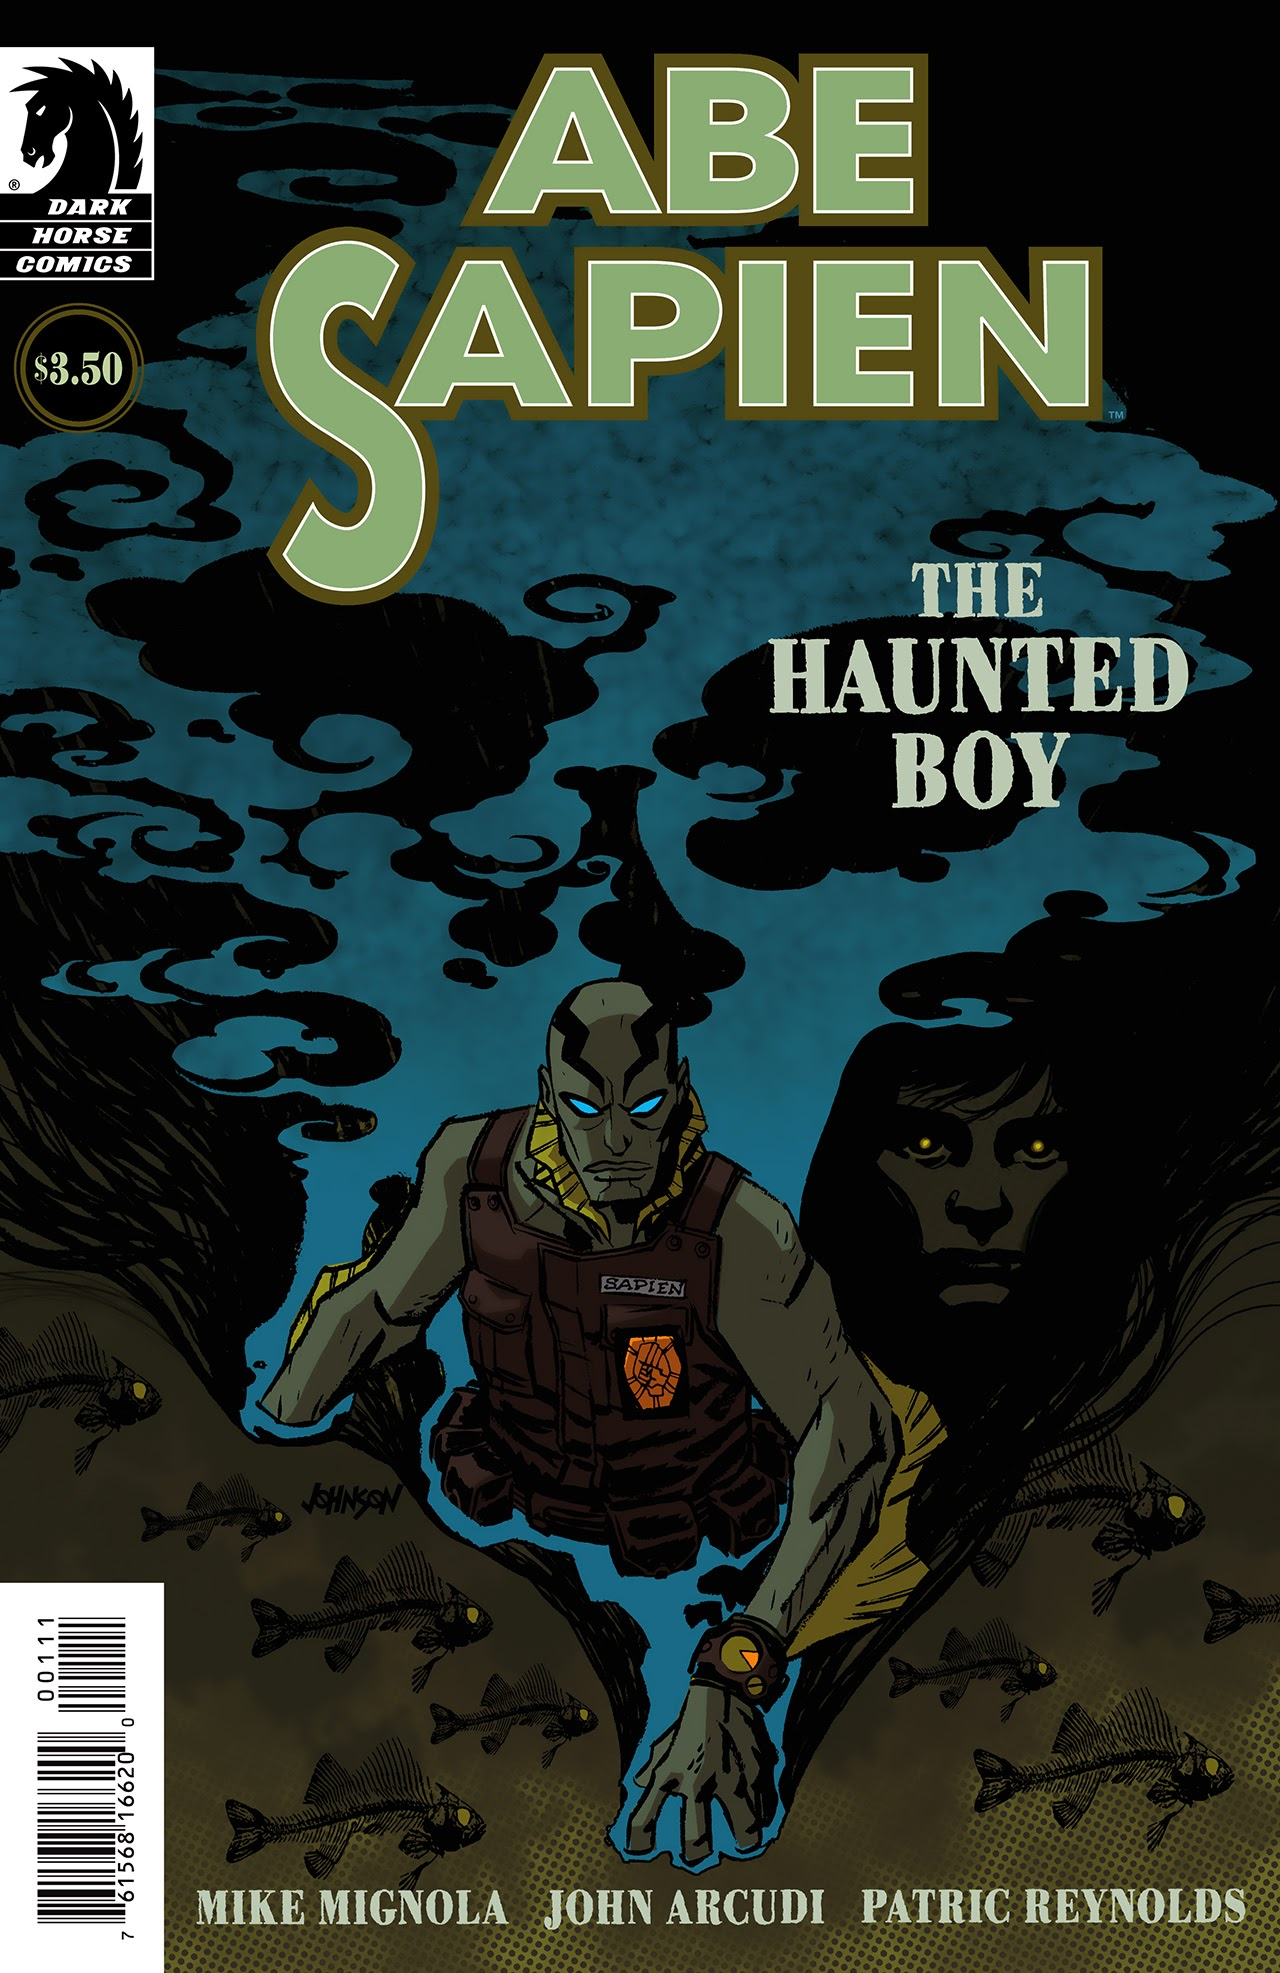 Abe Sapien: The Haunted Boy Full Page 1